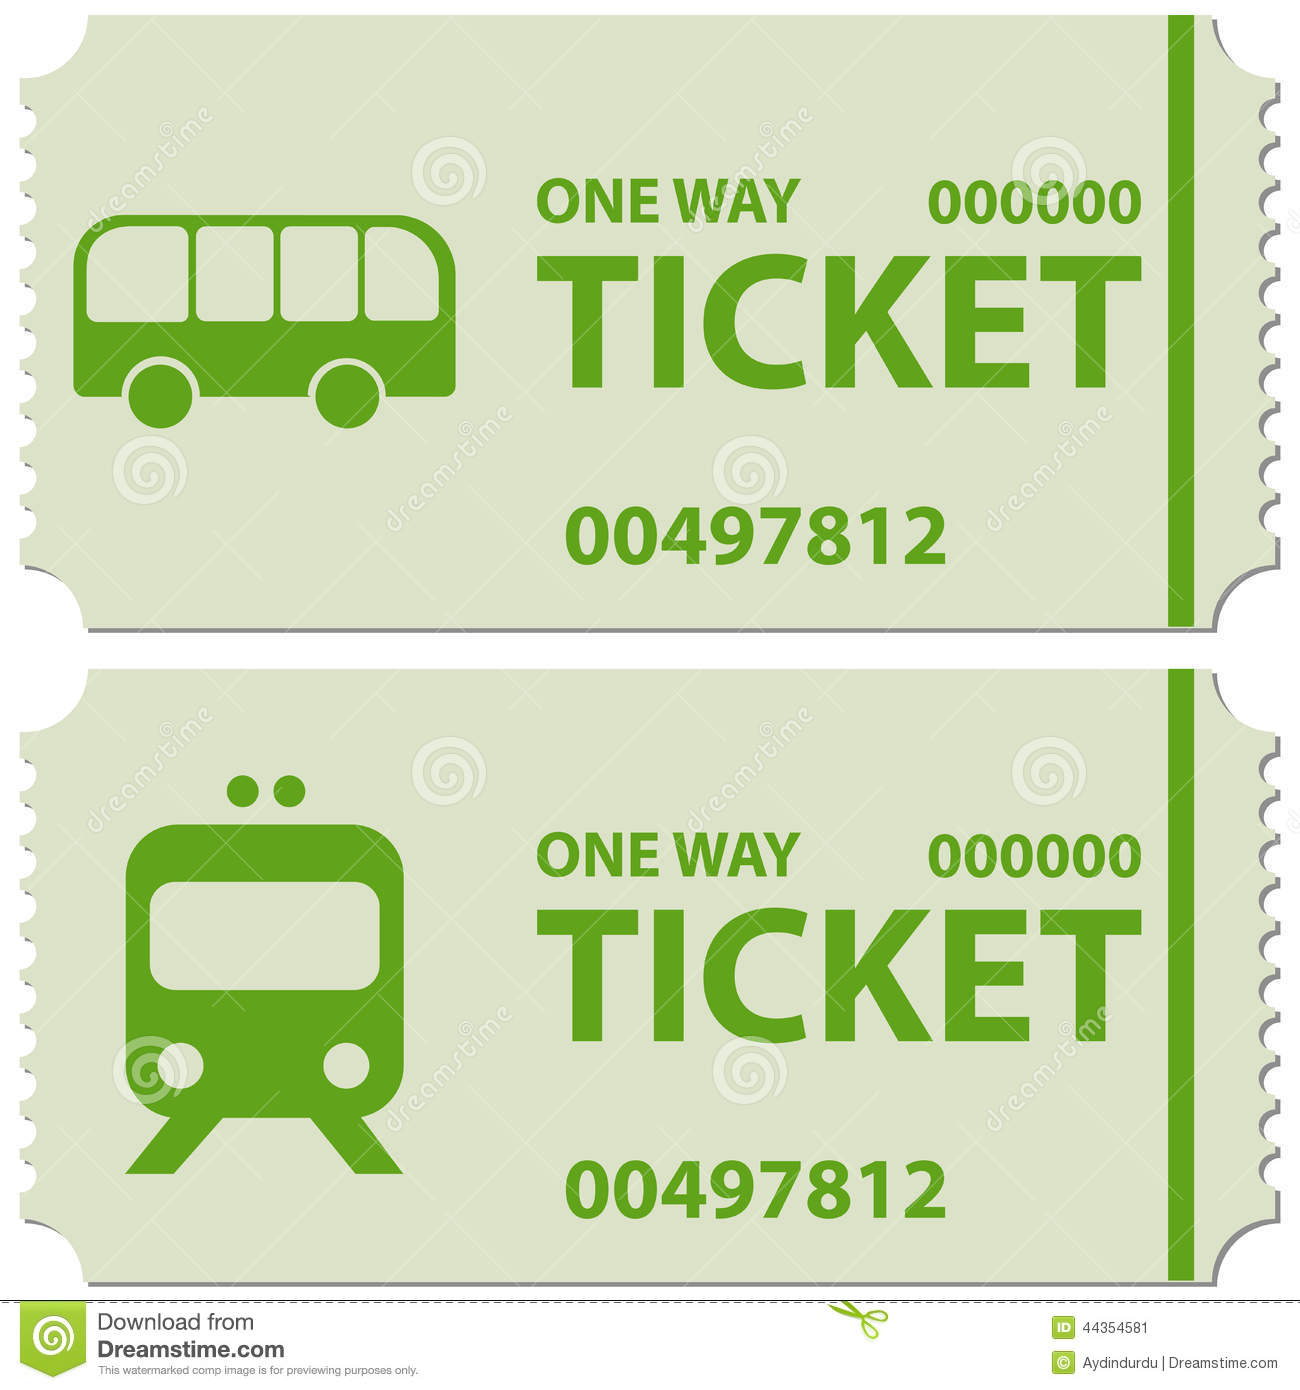 Illustration Of Bus And Train Tickets With Text   Ticket One Way   In